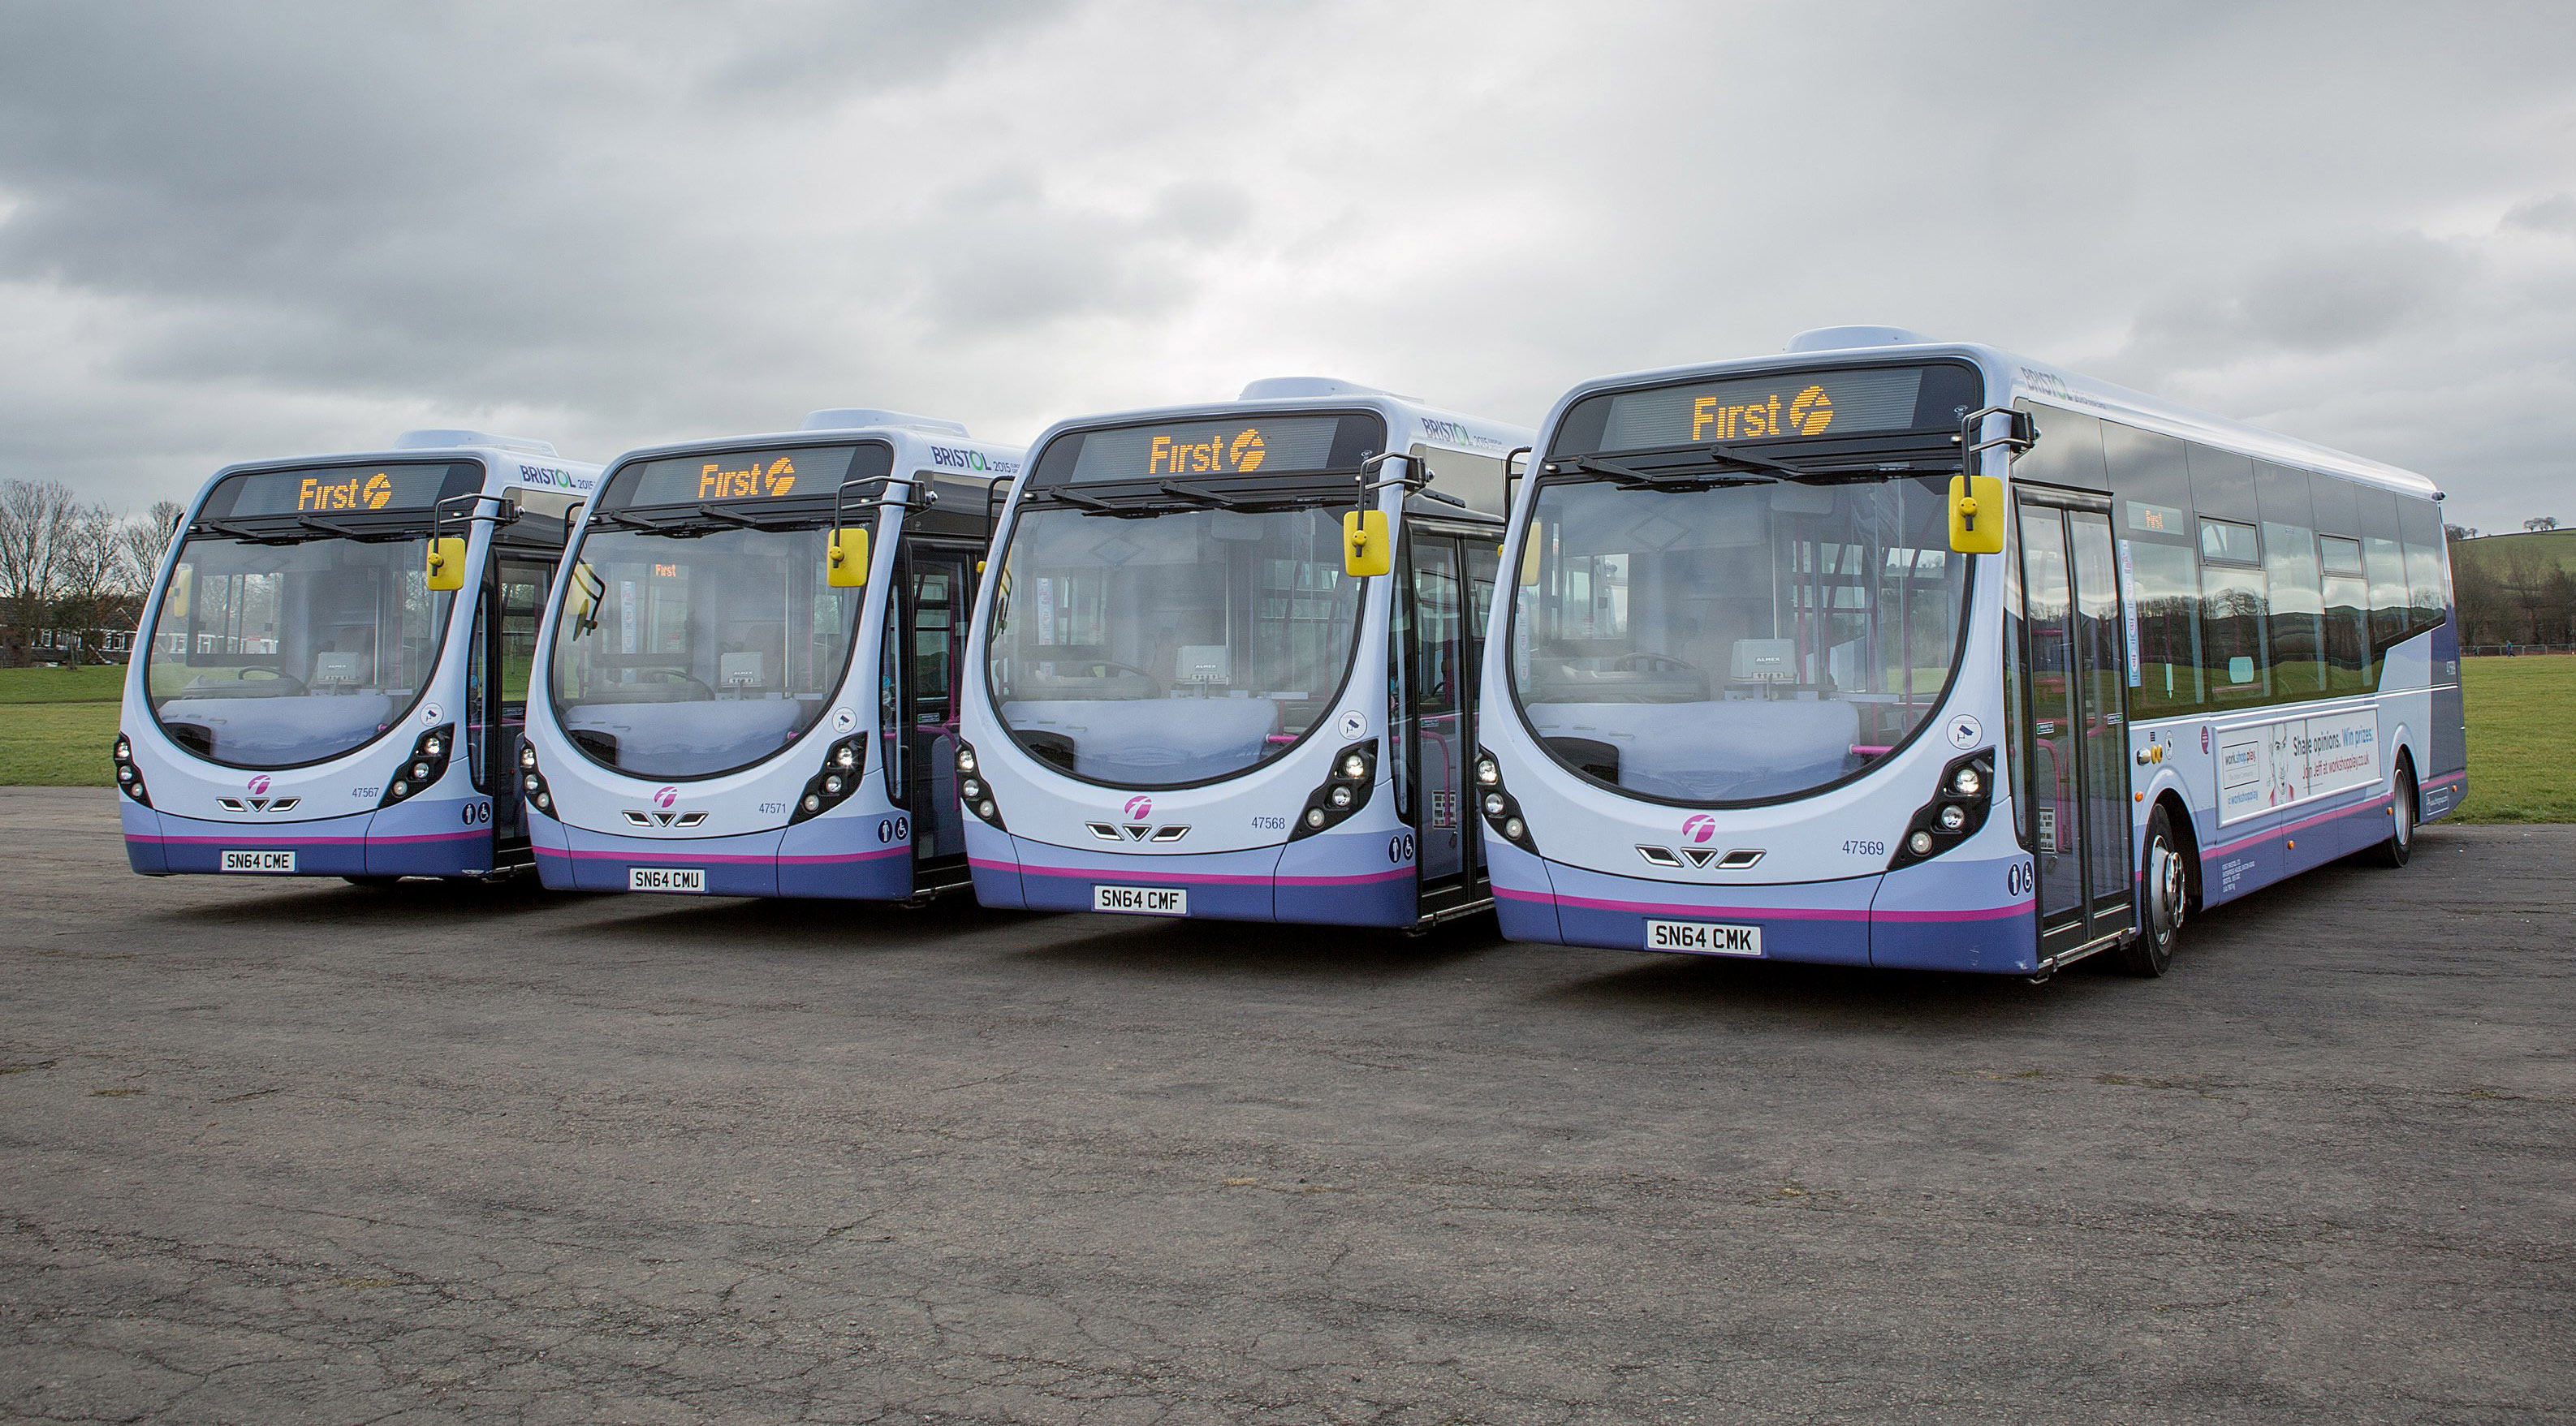 Over a hundred new buses for Scotland